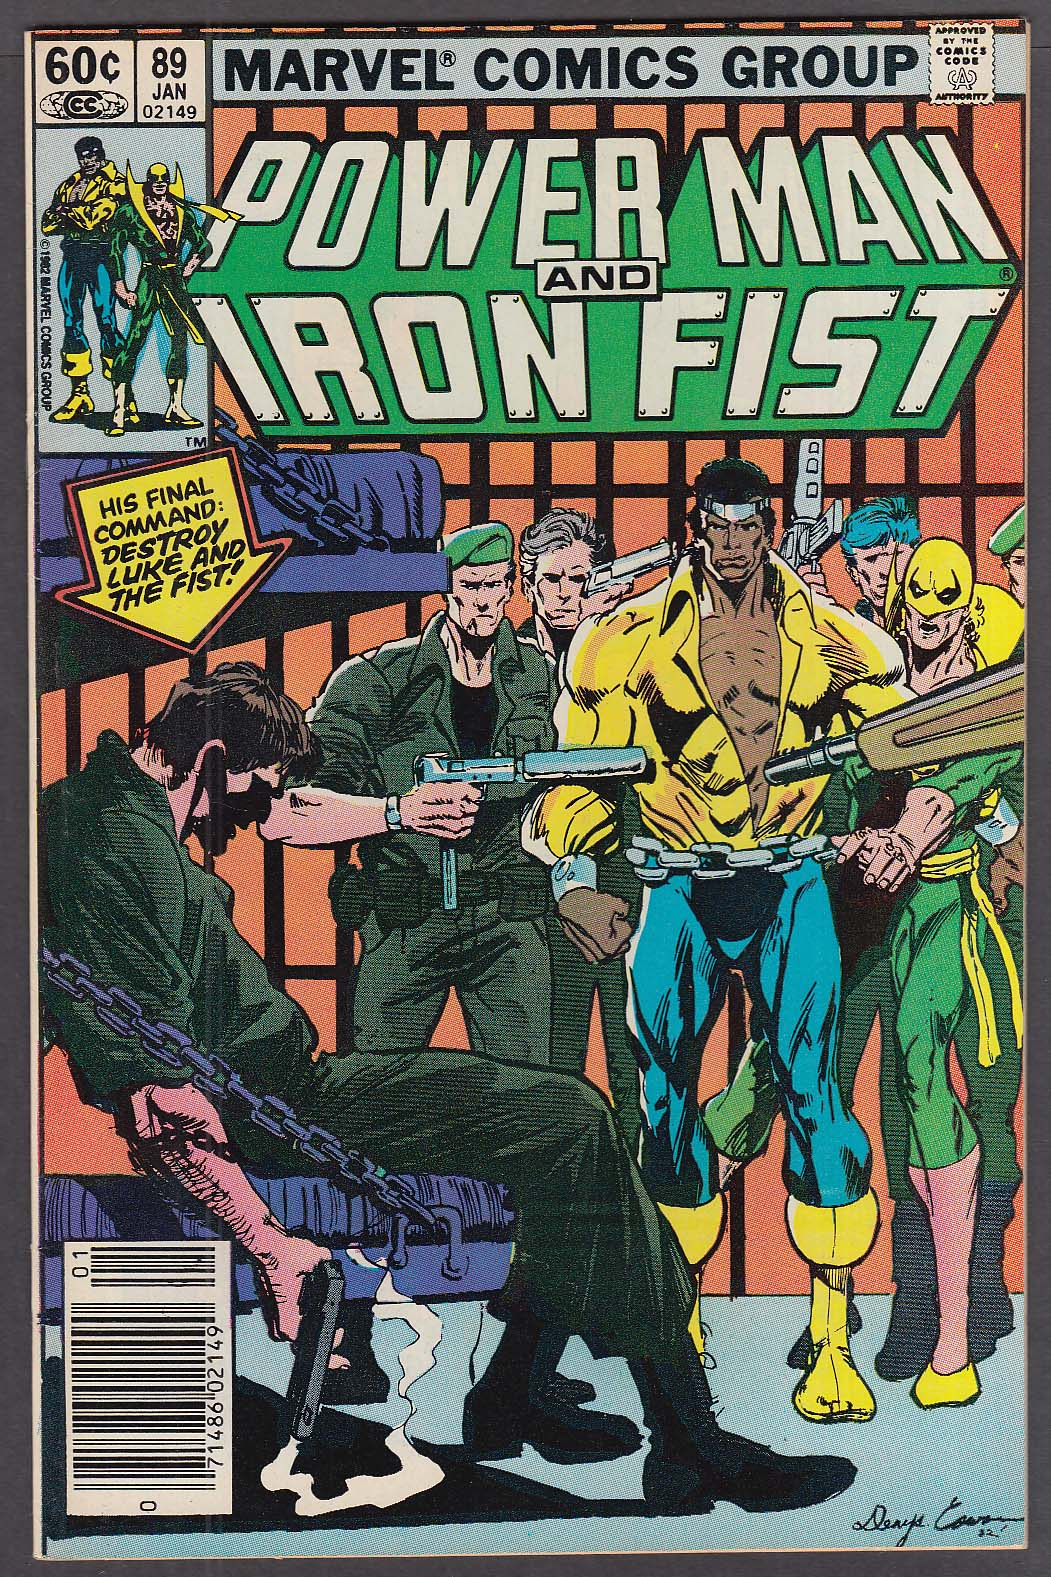 Image for POWER MAN & IRON FIST #89 Marvel comic book 1 1983